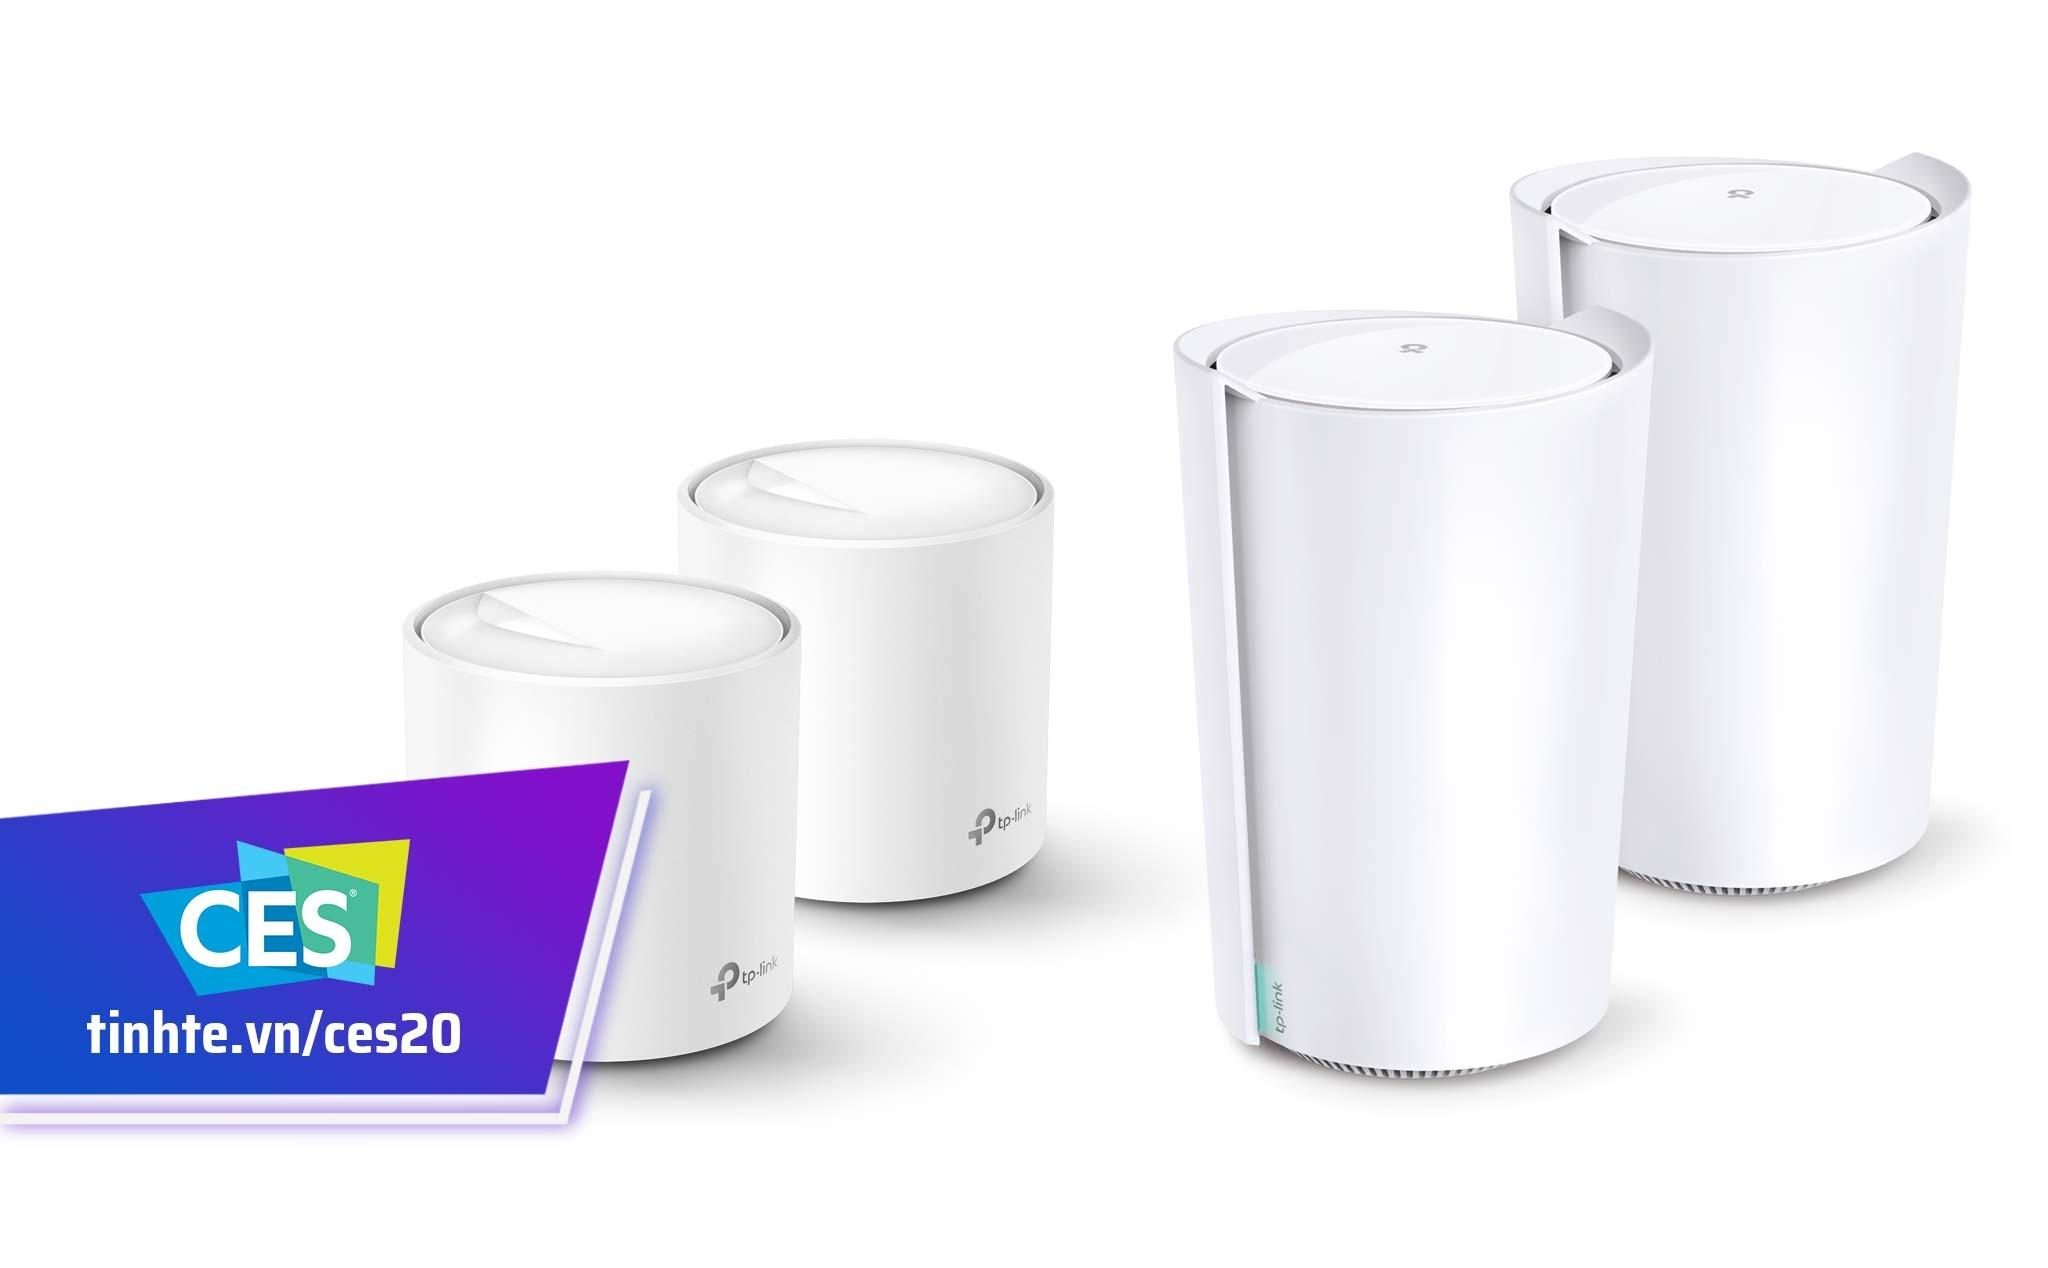 CES 2020 : TP-Link發布Deco Mesh分享器:支援Wi-Fi6、最大覆蓋557mm2 - XFastest - 4873314_cover_TP-Link_Deco_X20-X.jpg